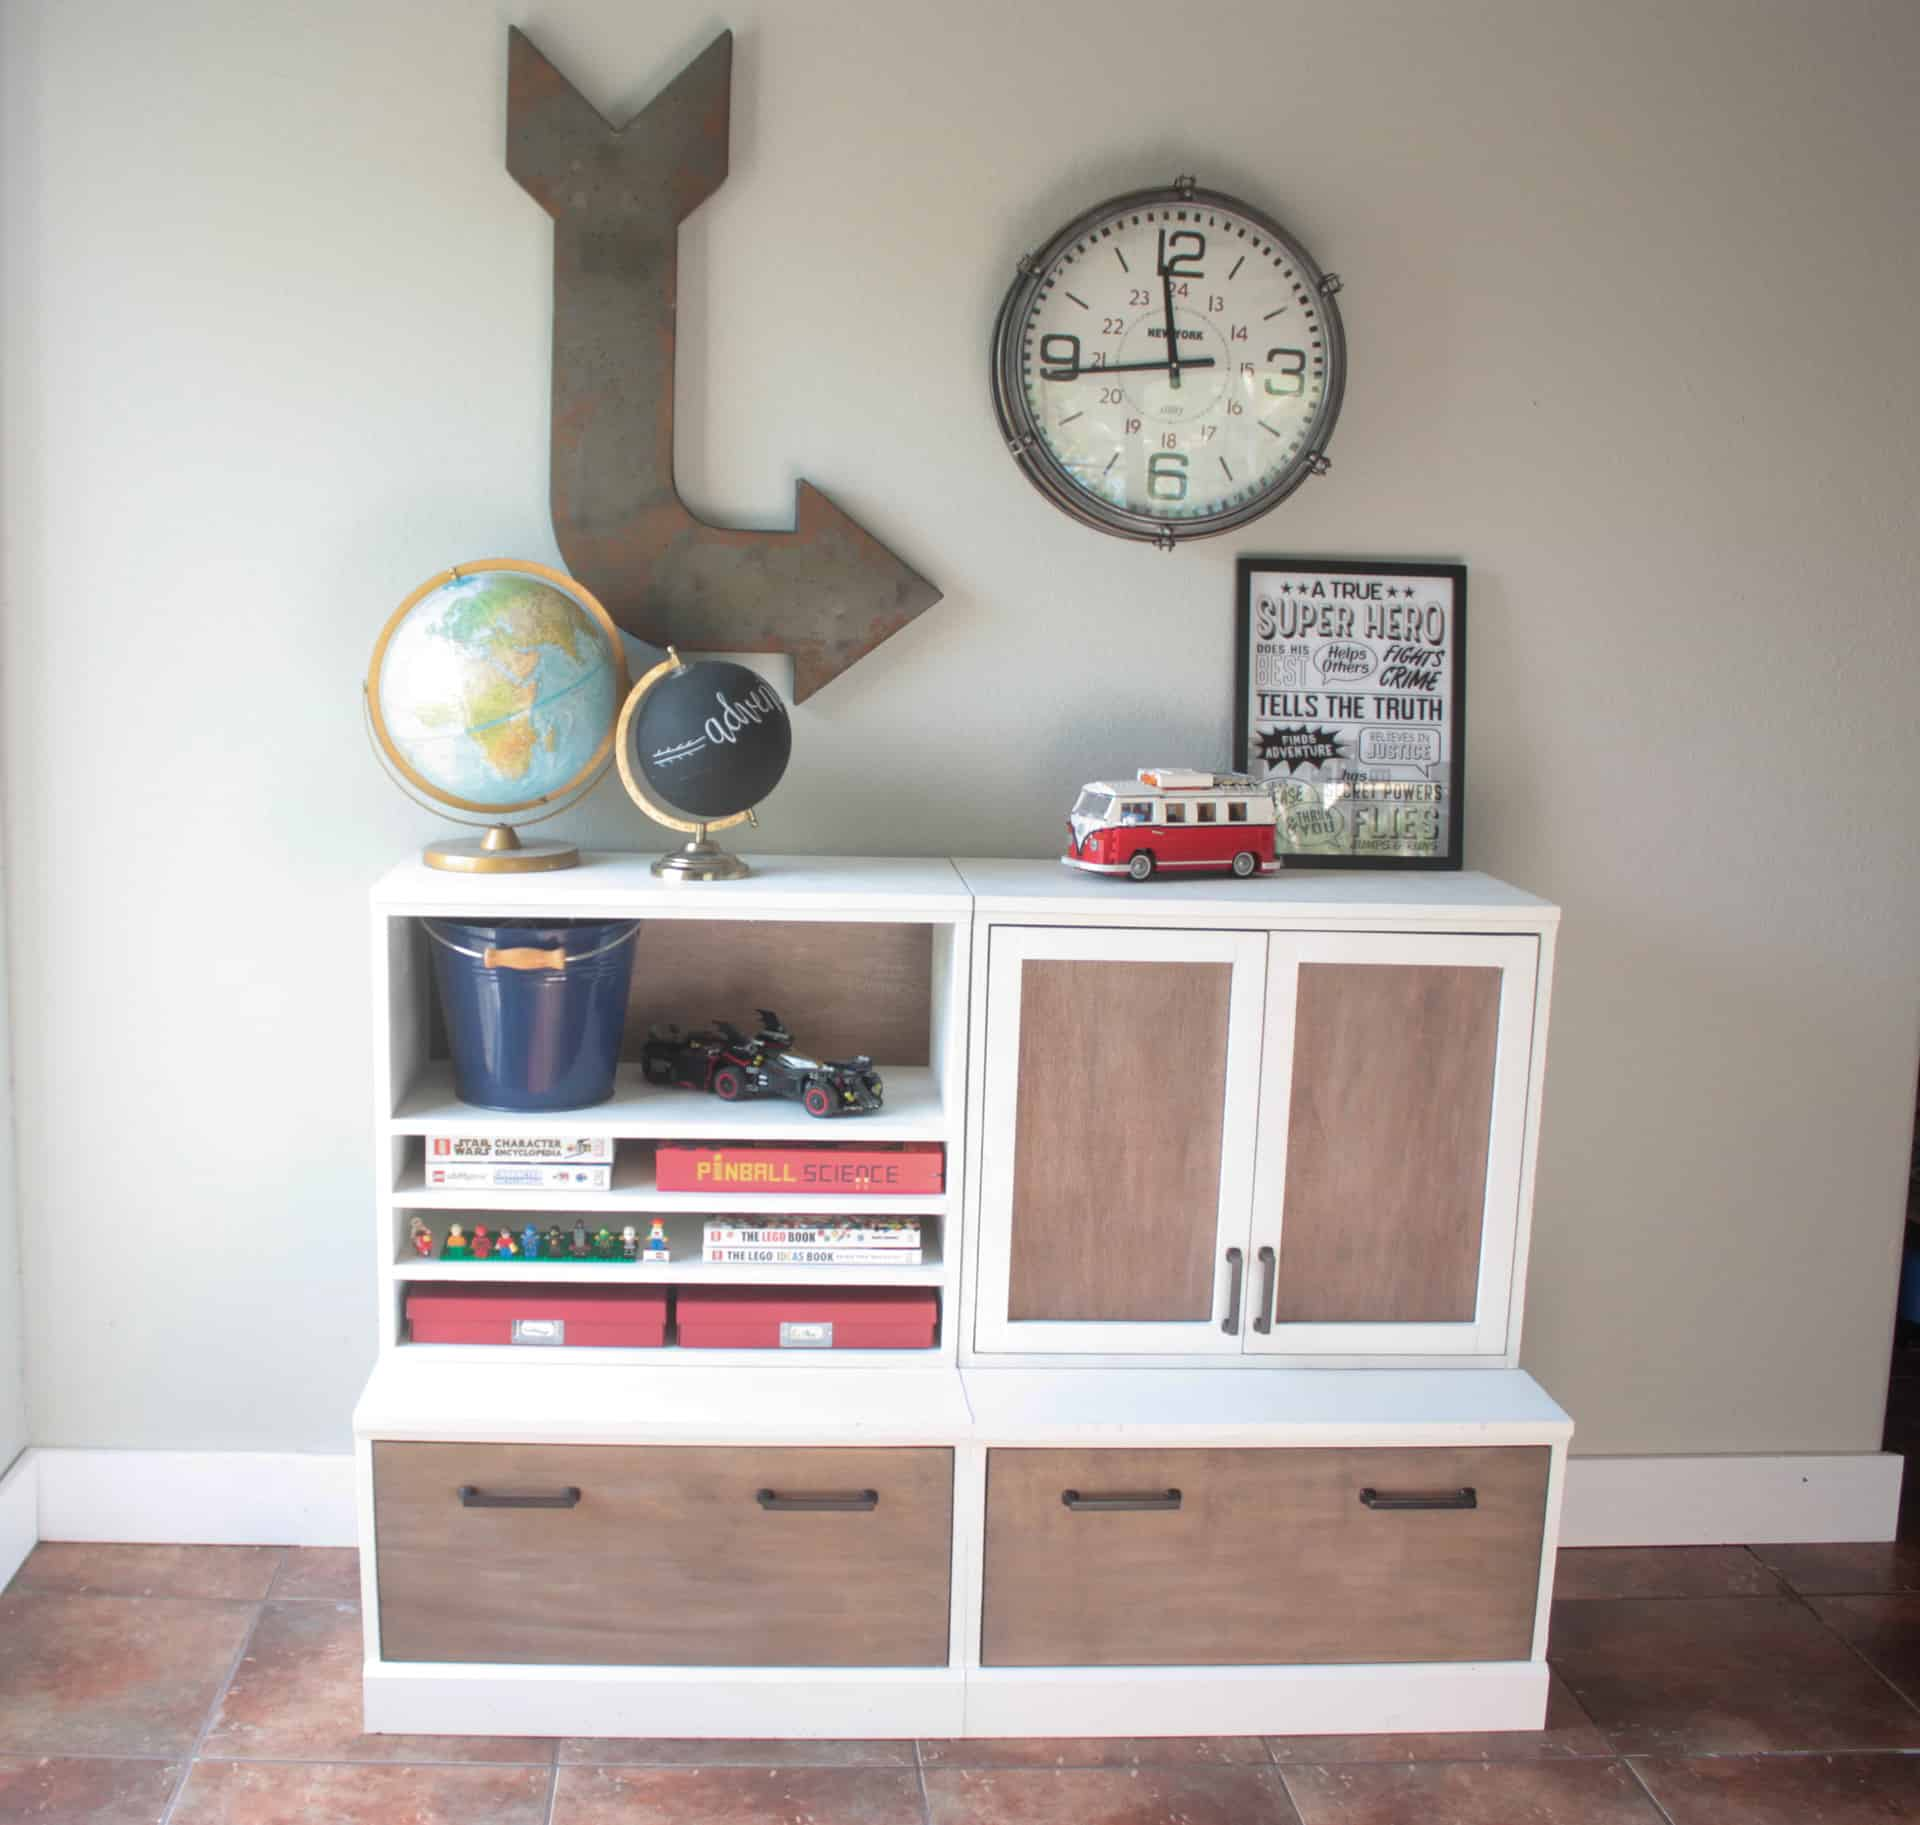 Pottery Barn Kids Inspired Modular Storage System The